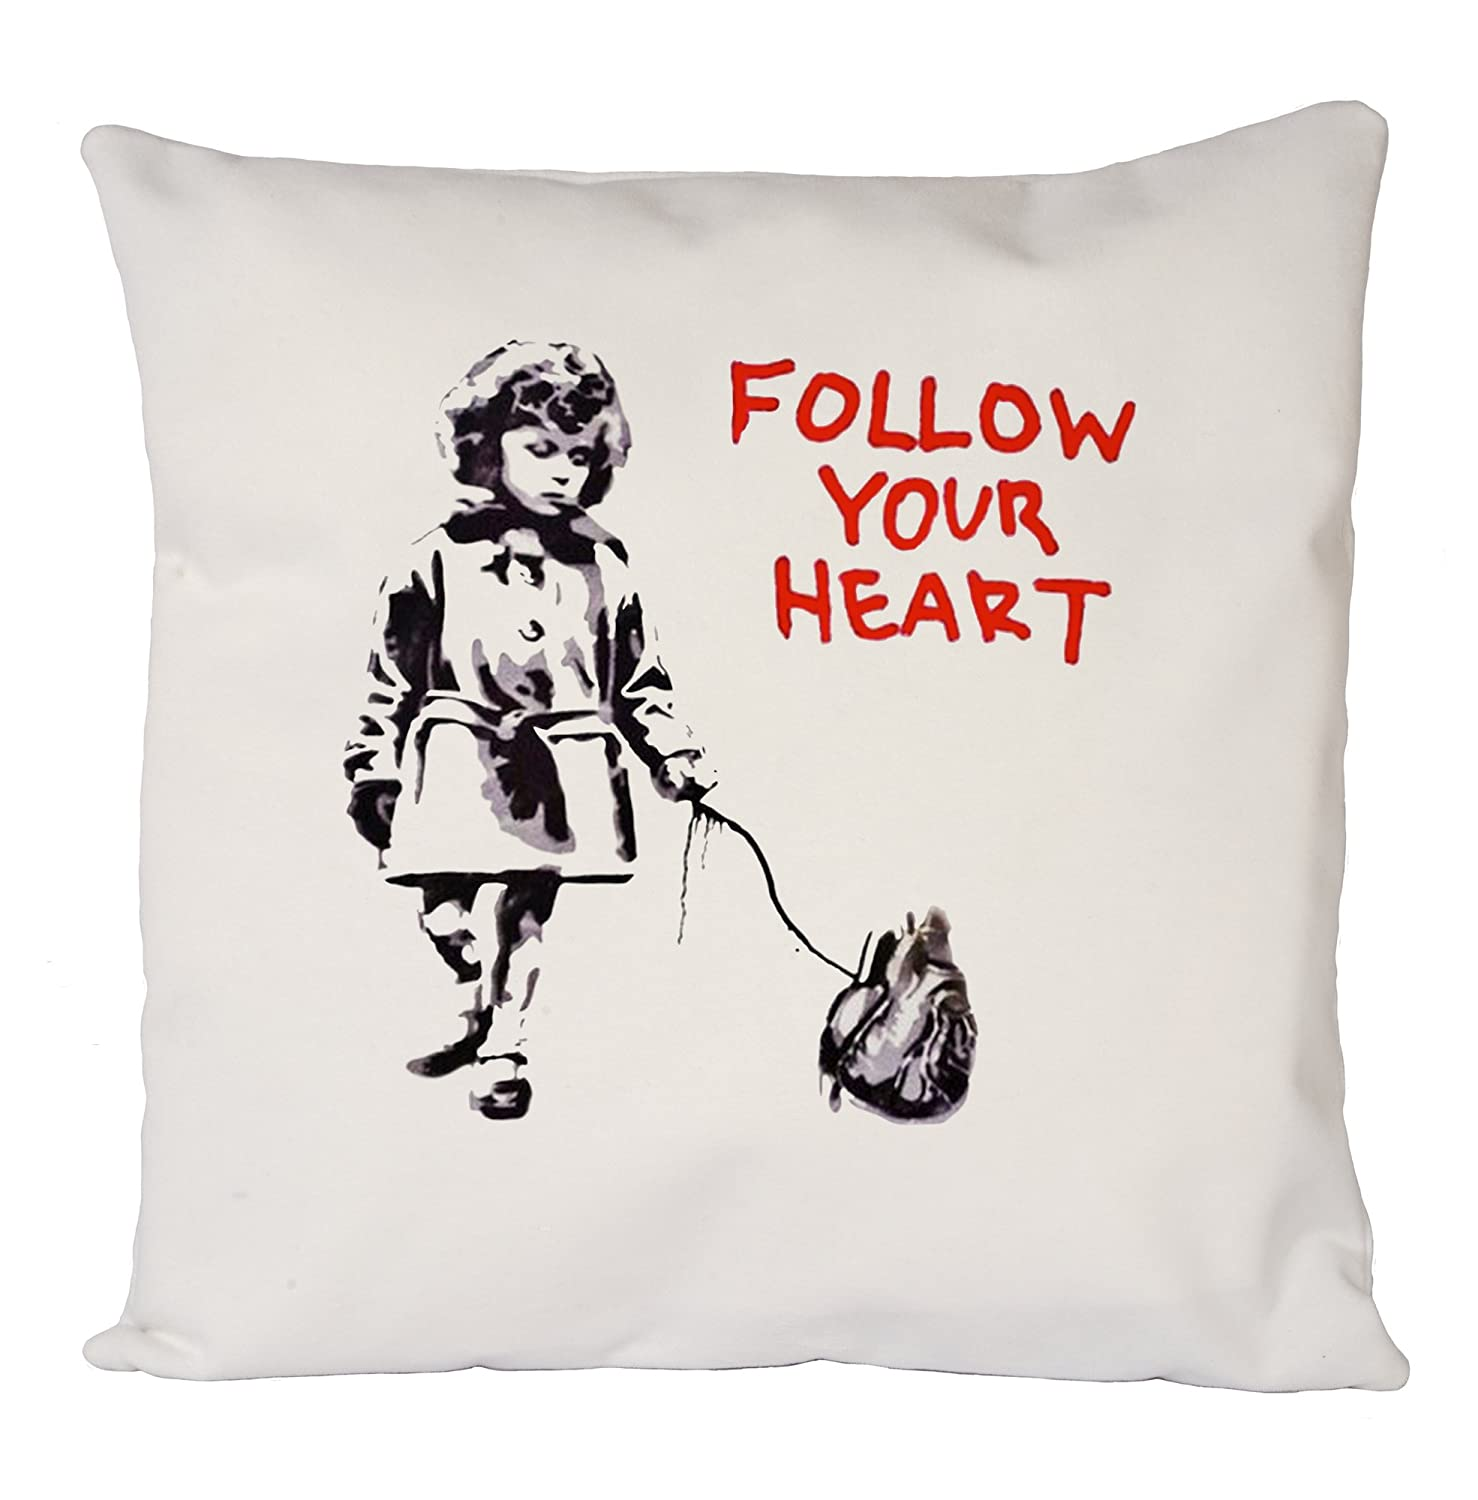 Banksy Follow Your Heart, Pillow Case, Cushion Cover, Home Sofa Décor Uk print king